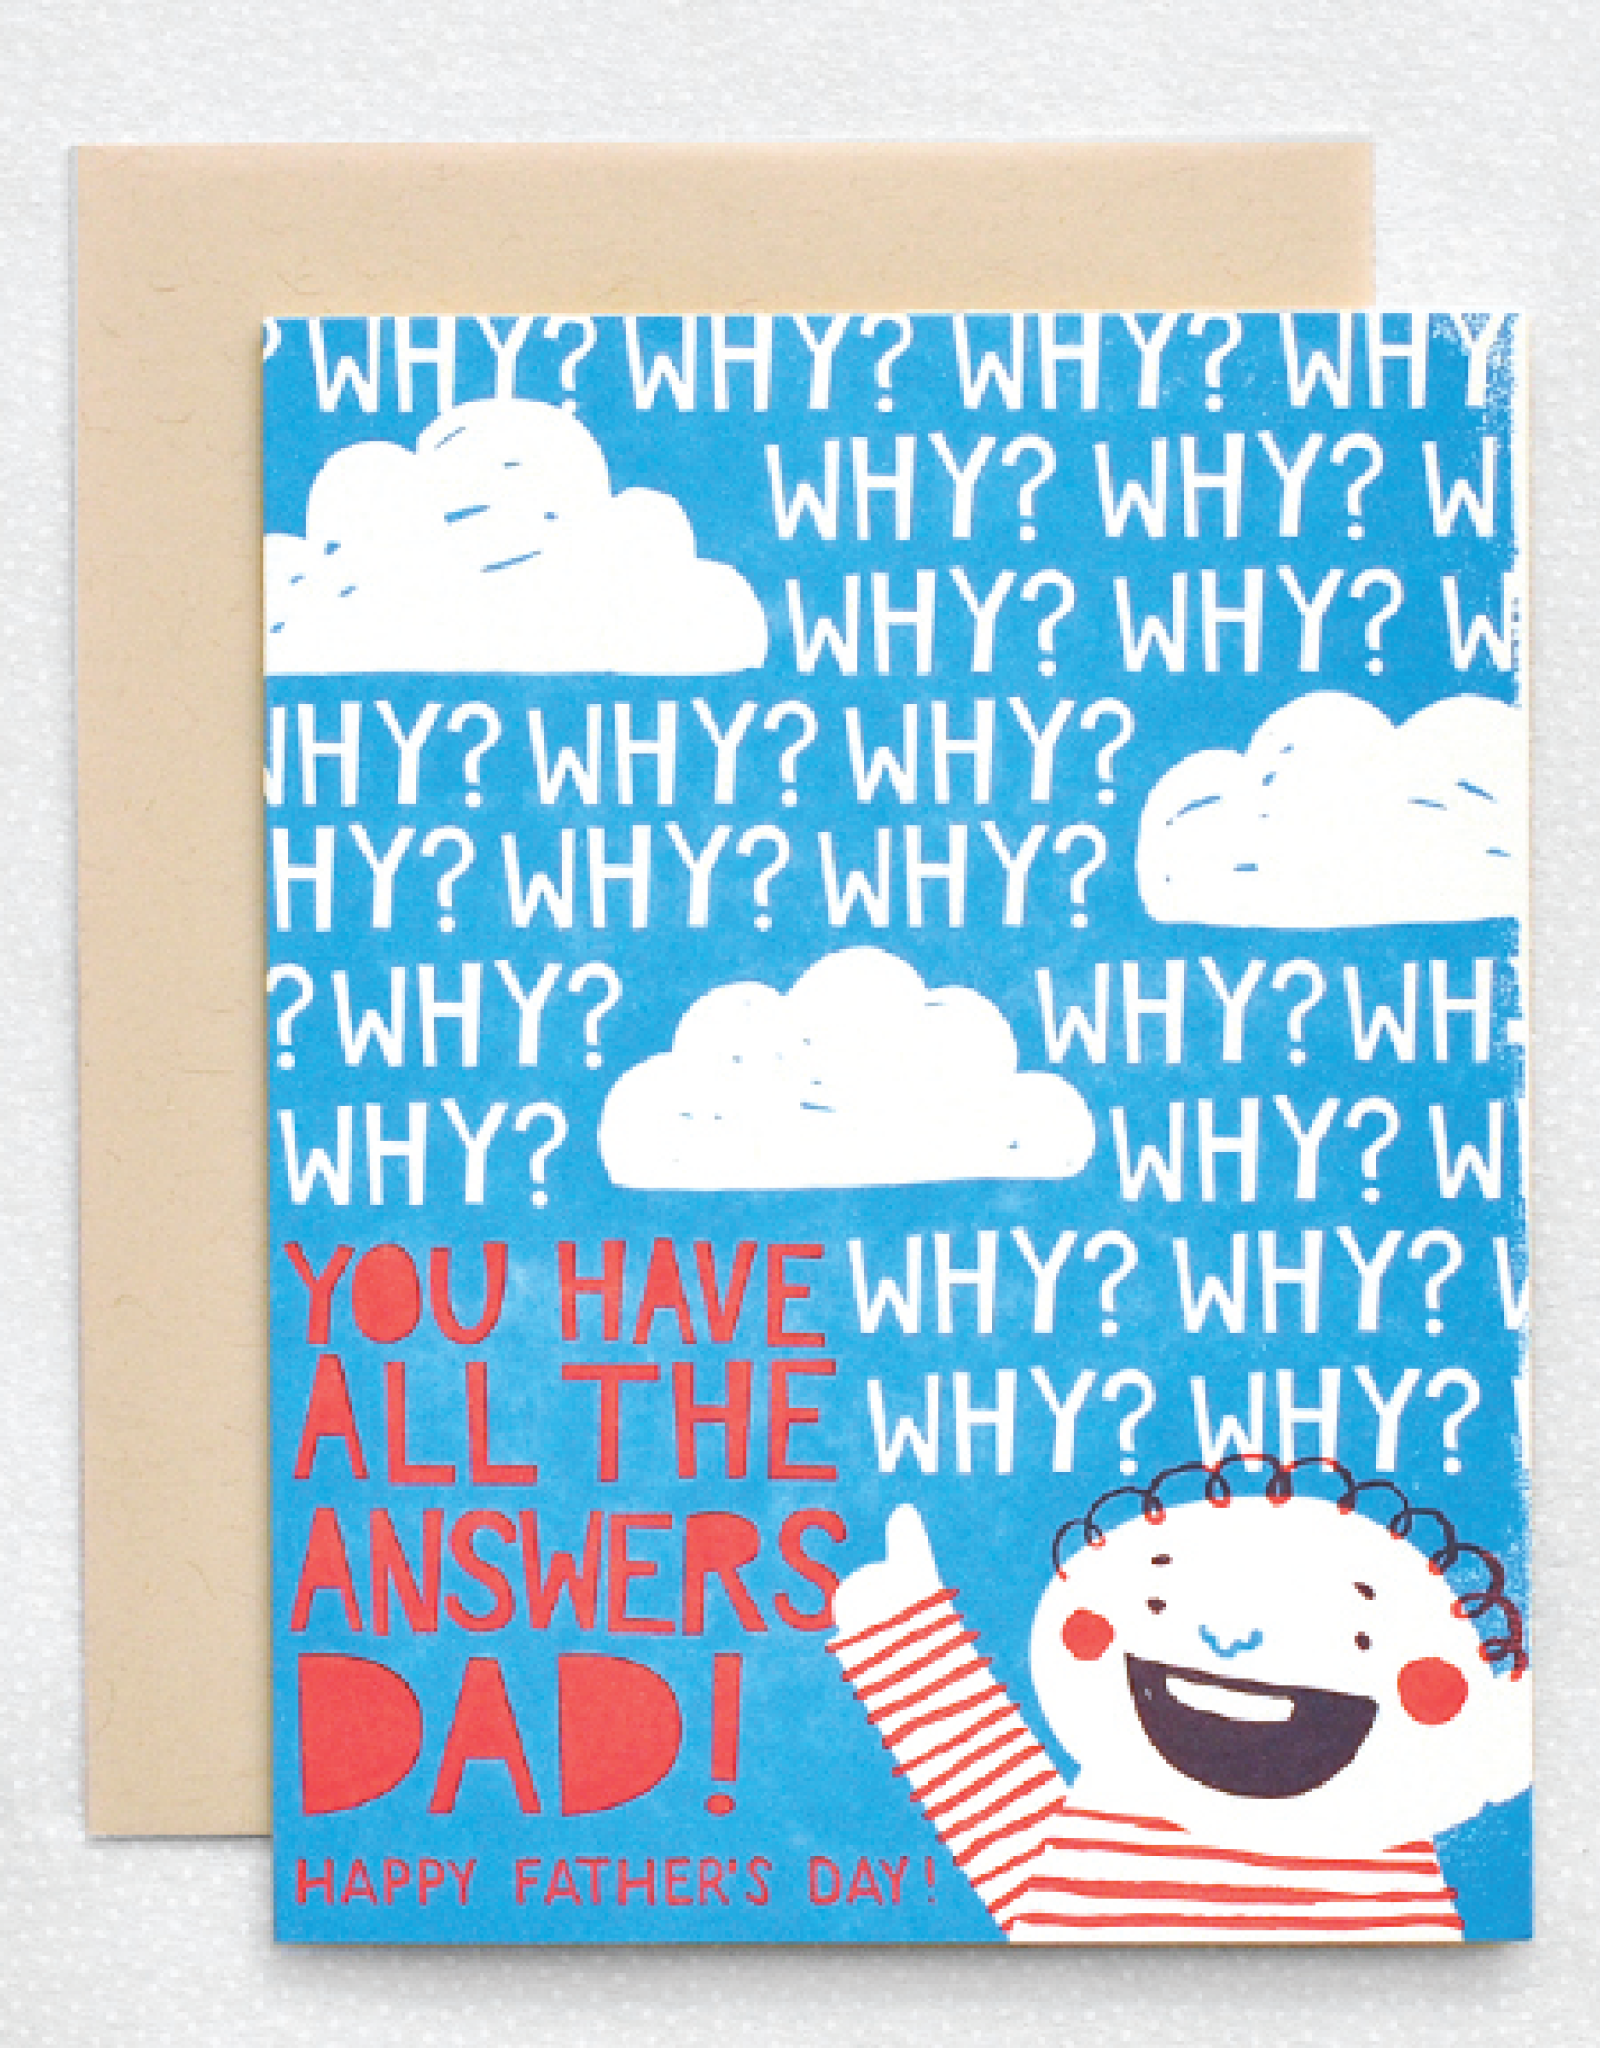 All the Answers Happy Father's Day Greeting card - Hello Lucky